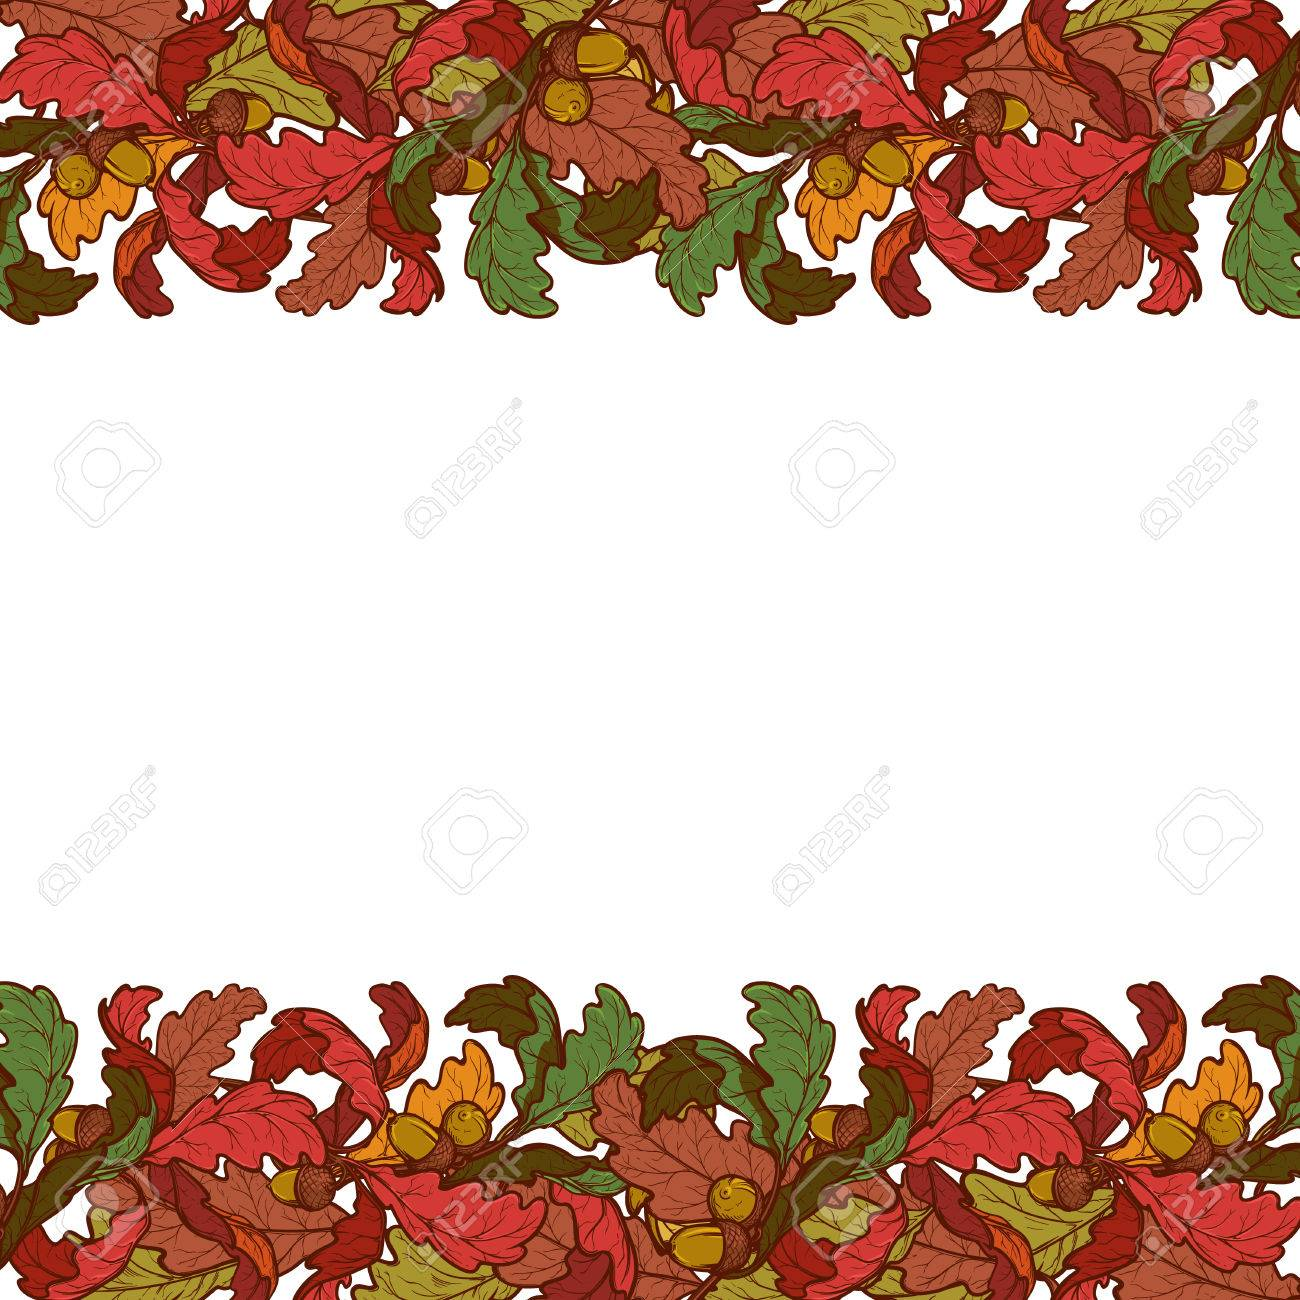 1300x1300 Leaf Border Template. Border Leaf Border Template. Maple Leaf